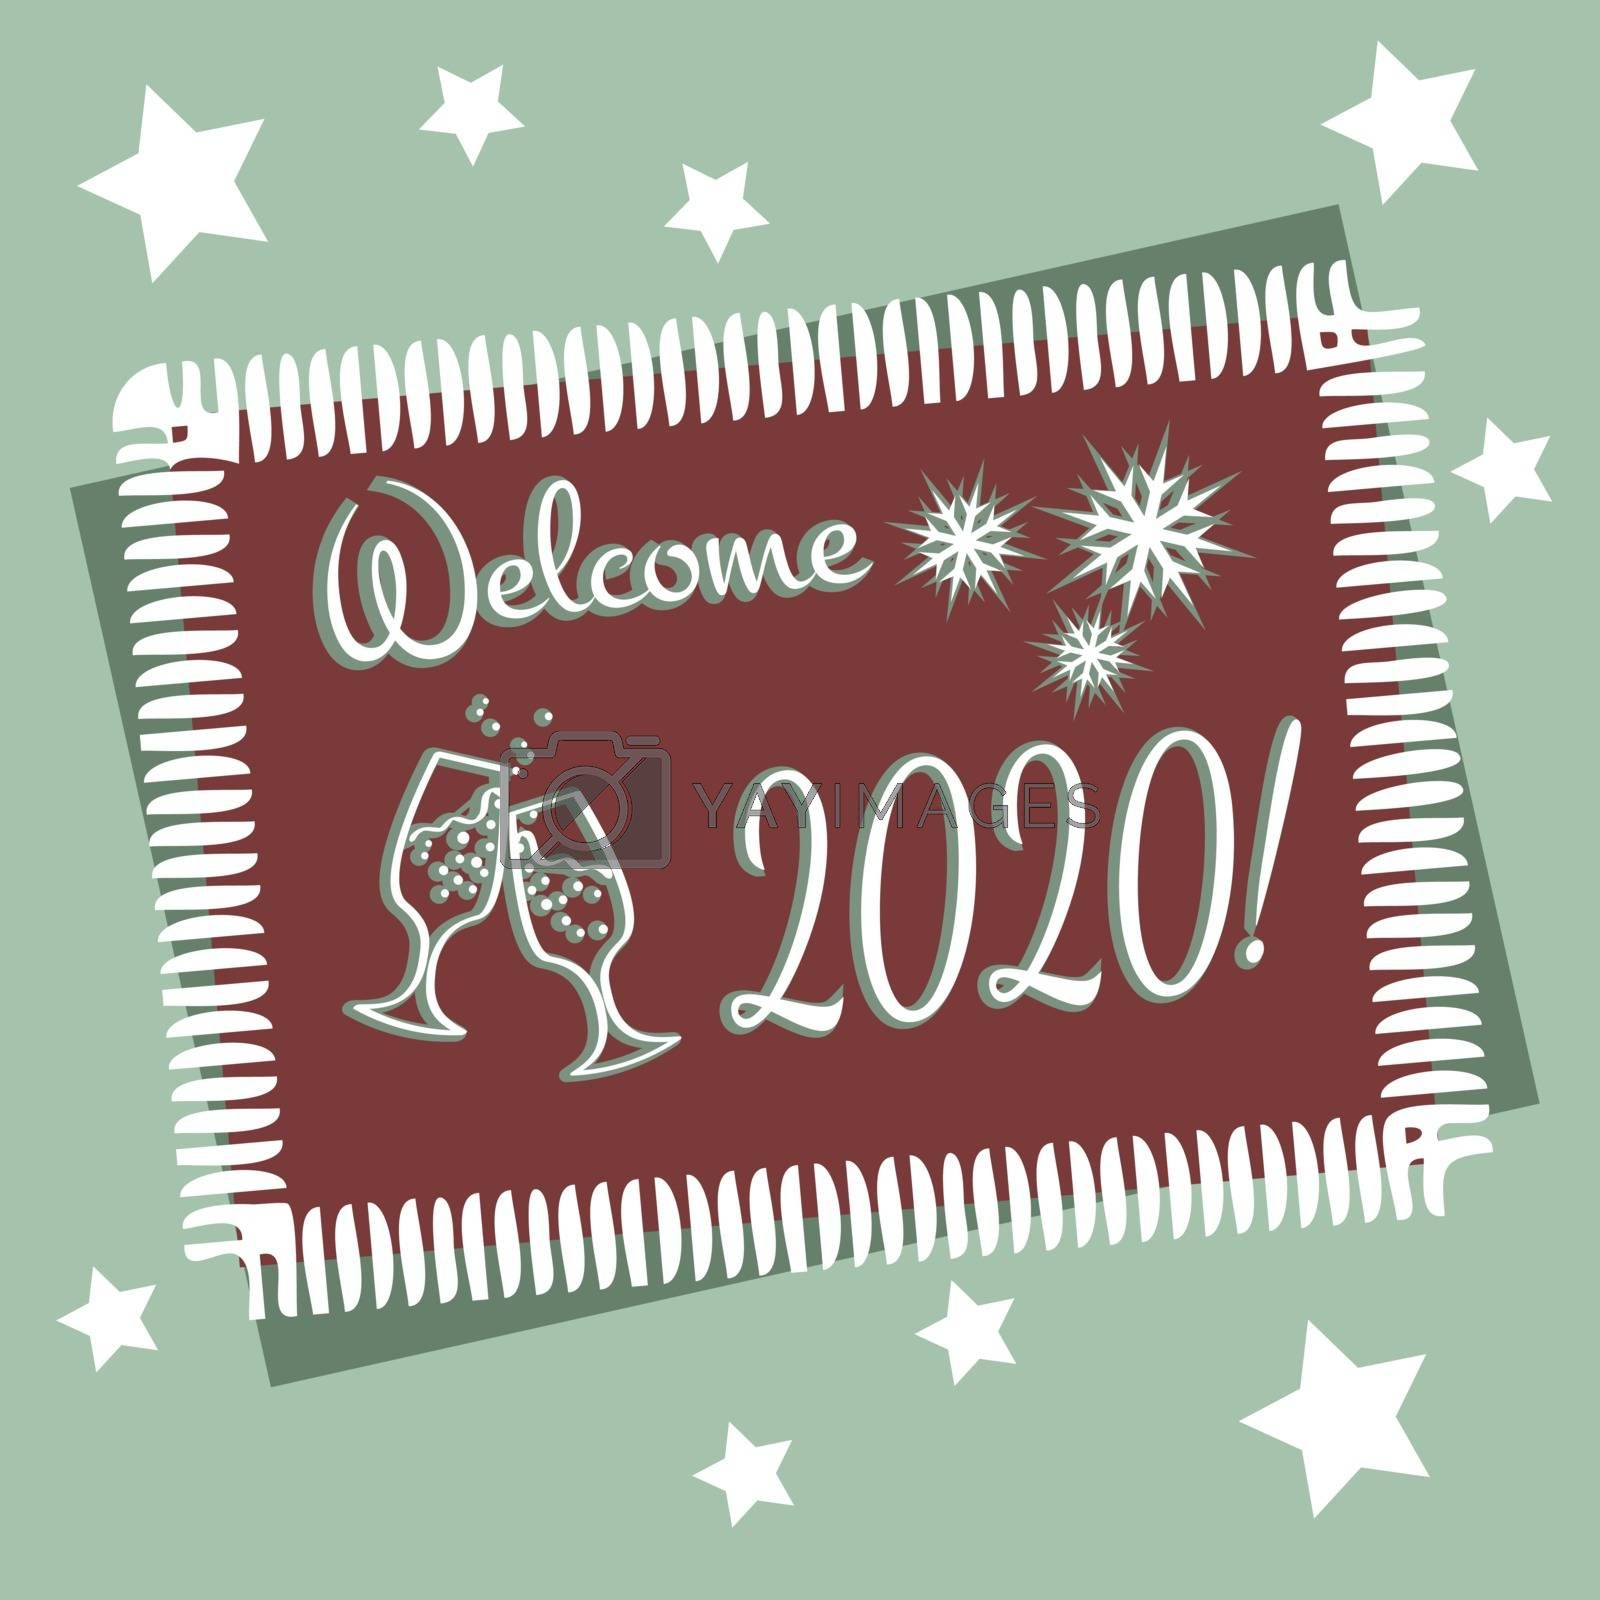 New year greeting card in muted colors. text 'welcome 2020'